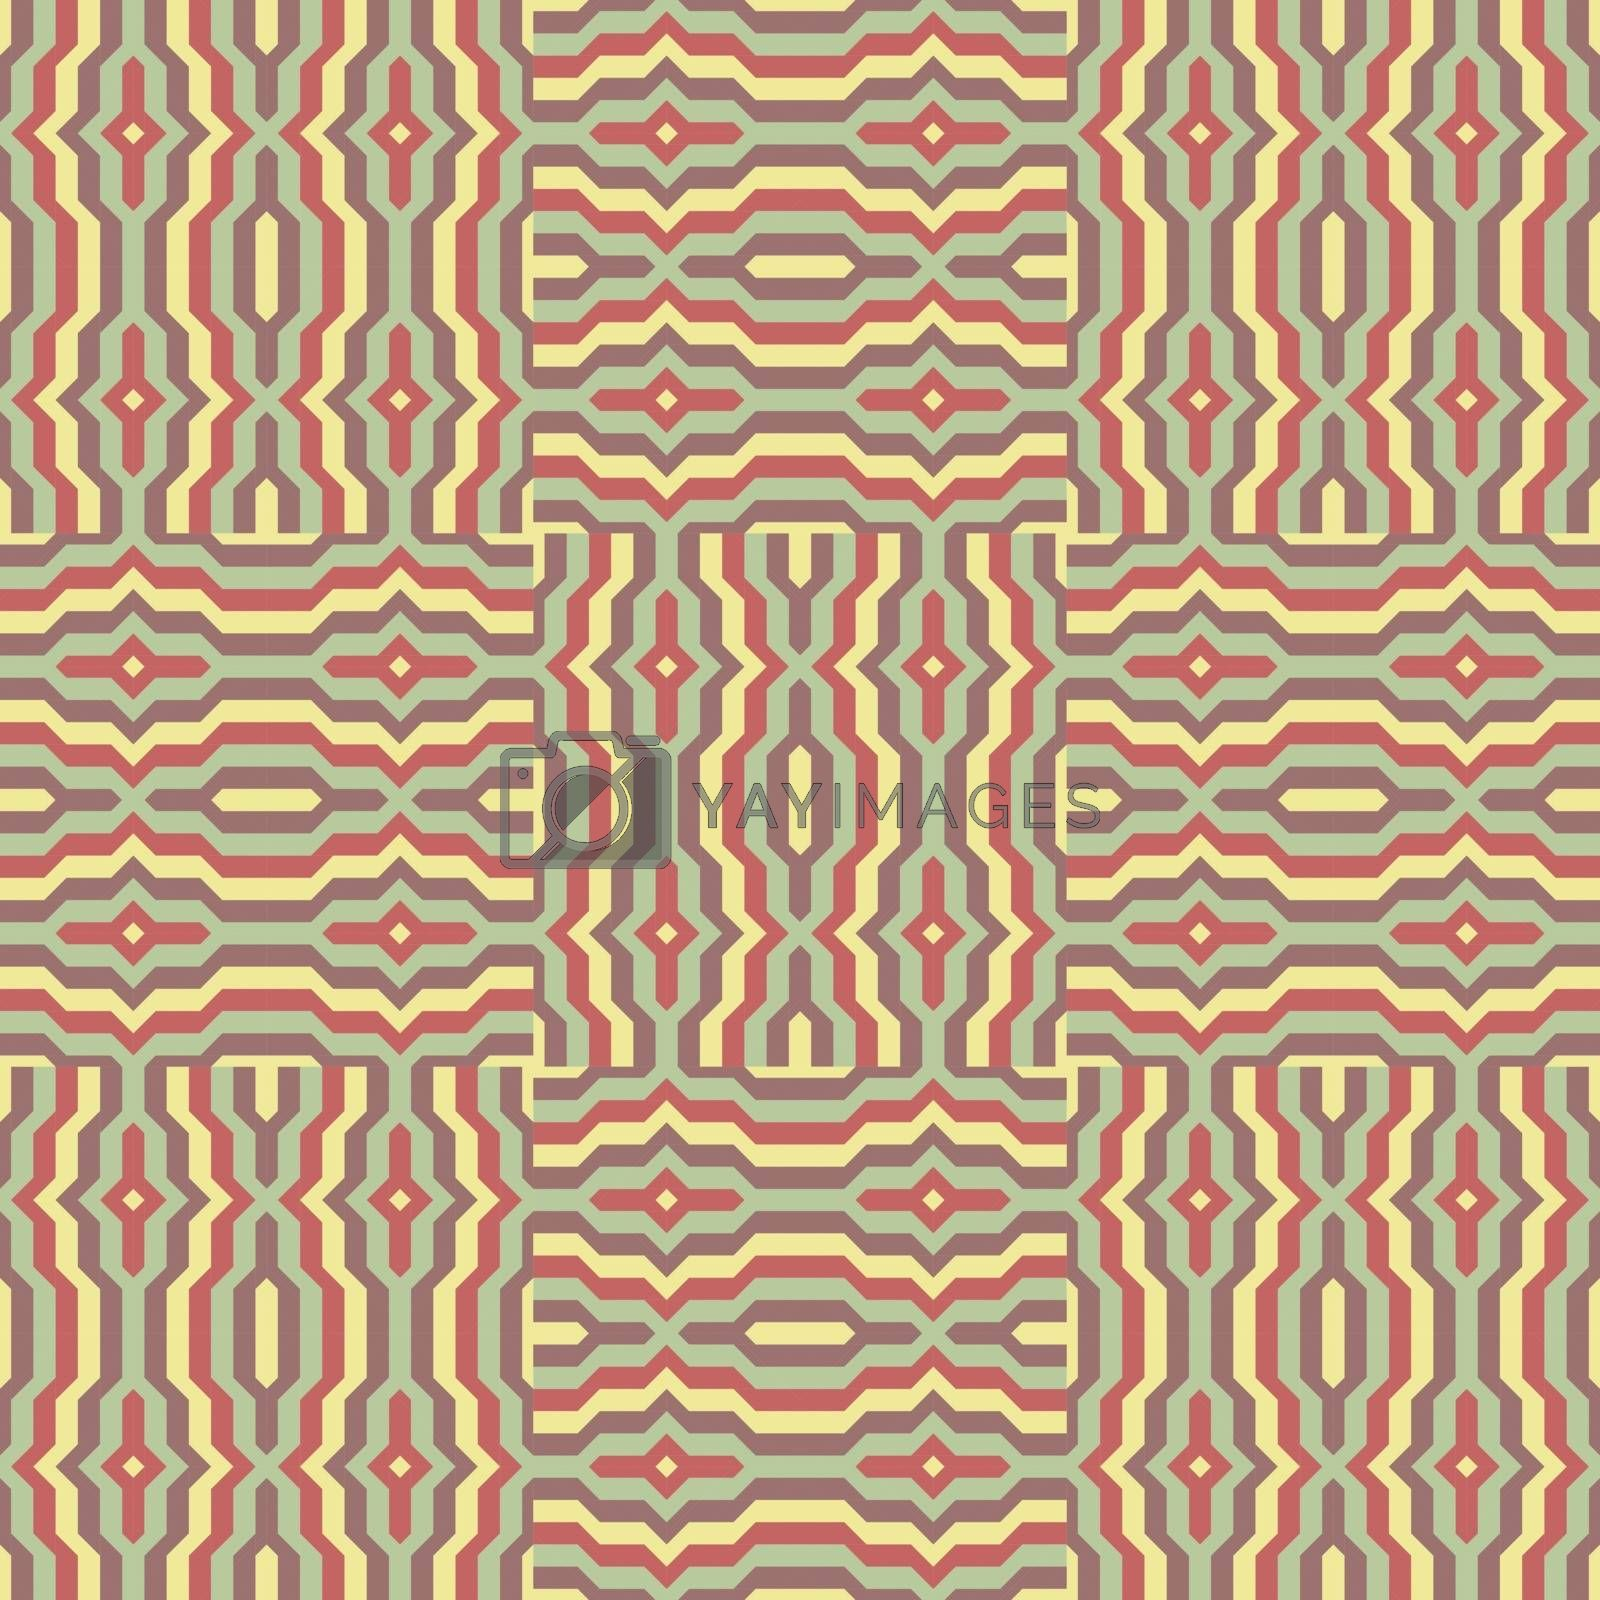 Seamless pattern. Mosaic. Template for design. by login